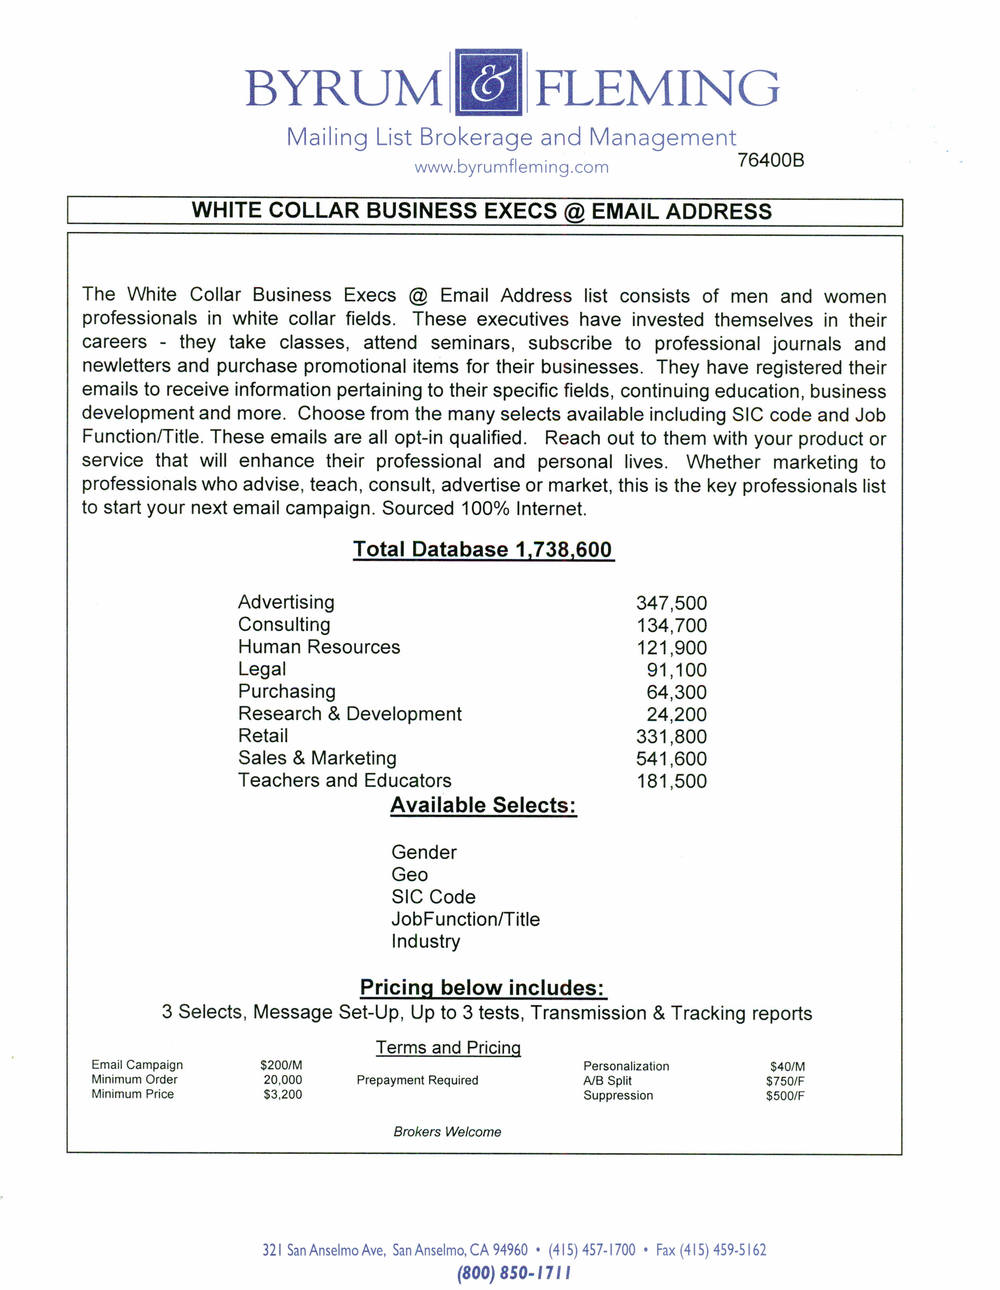 White Collar Business Execs @ Email Address — Byrum